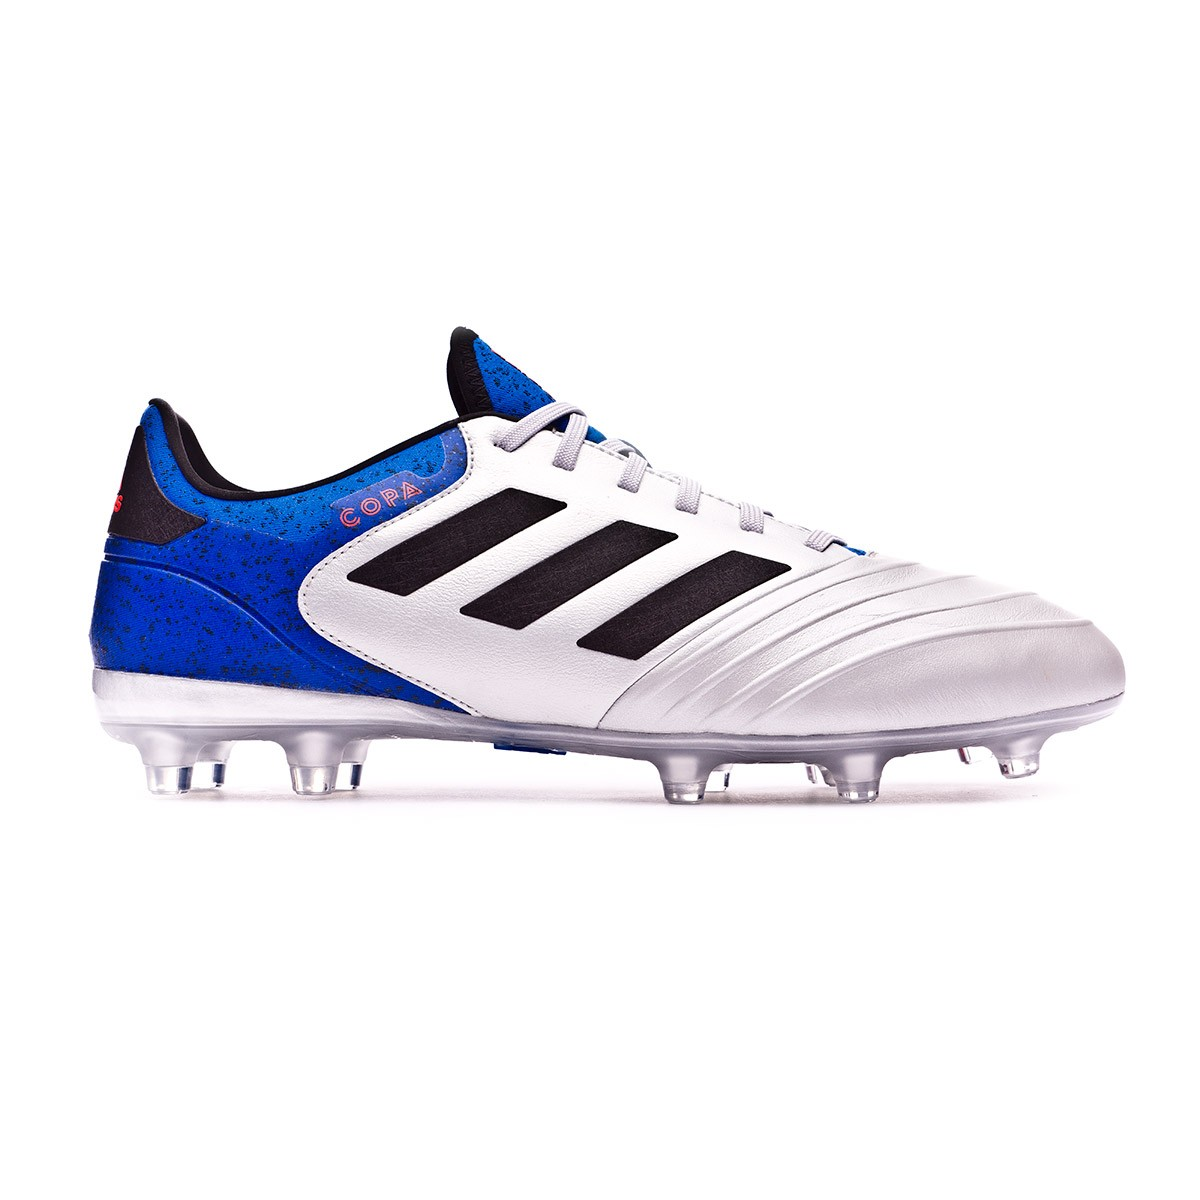 best service 1570f abf7a Boot adidas Copa 18.2 FG Silver metallic-Core black-Football blue - Football  store Fútbol Emotion